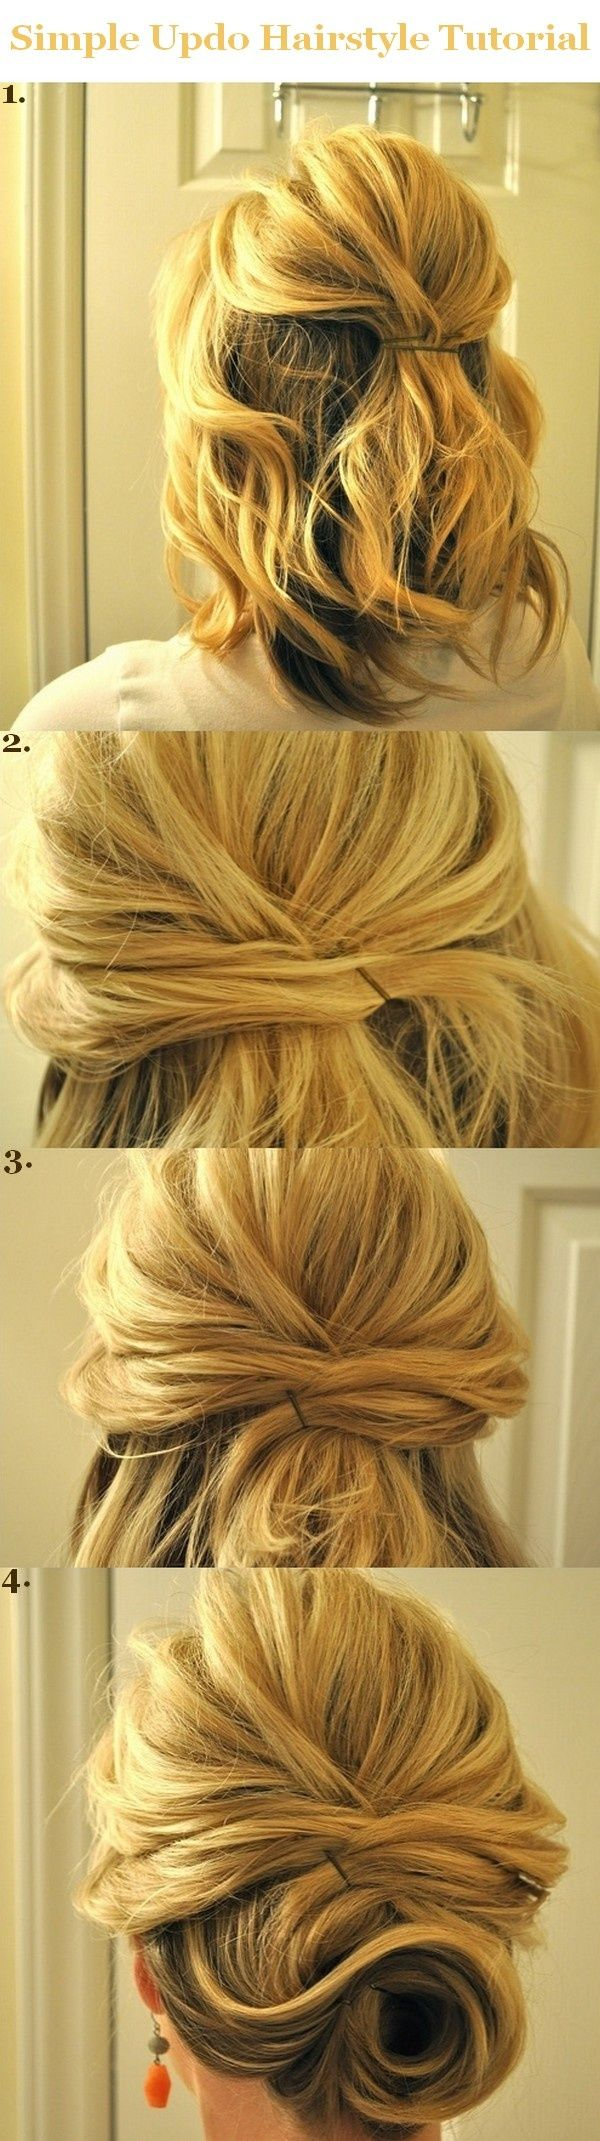 #celebrity hairstyles, #latest hairstyles, long #hairstyles #braided styles #wedding hair styles